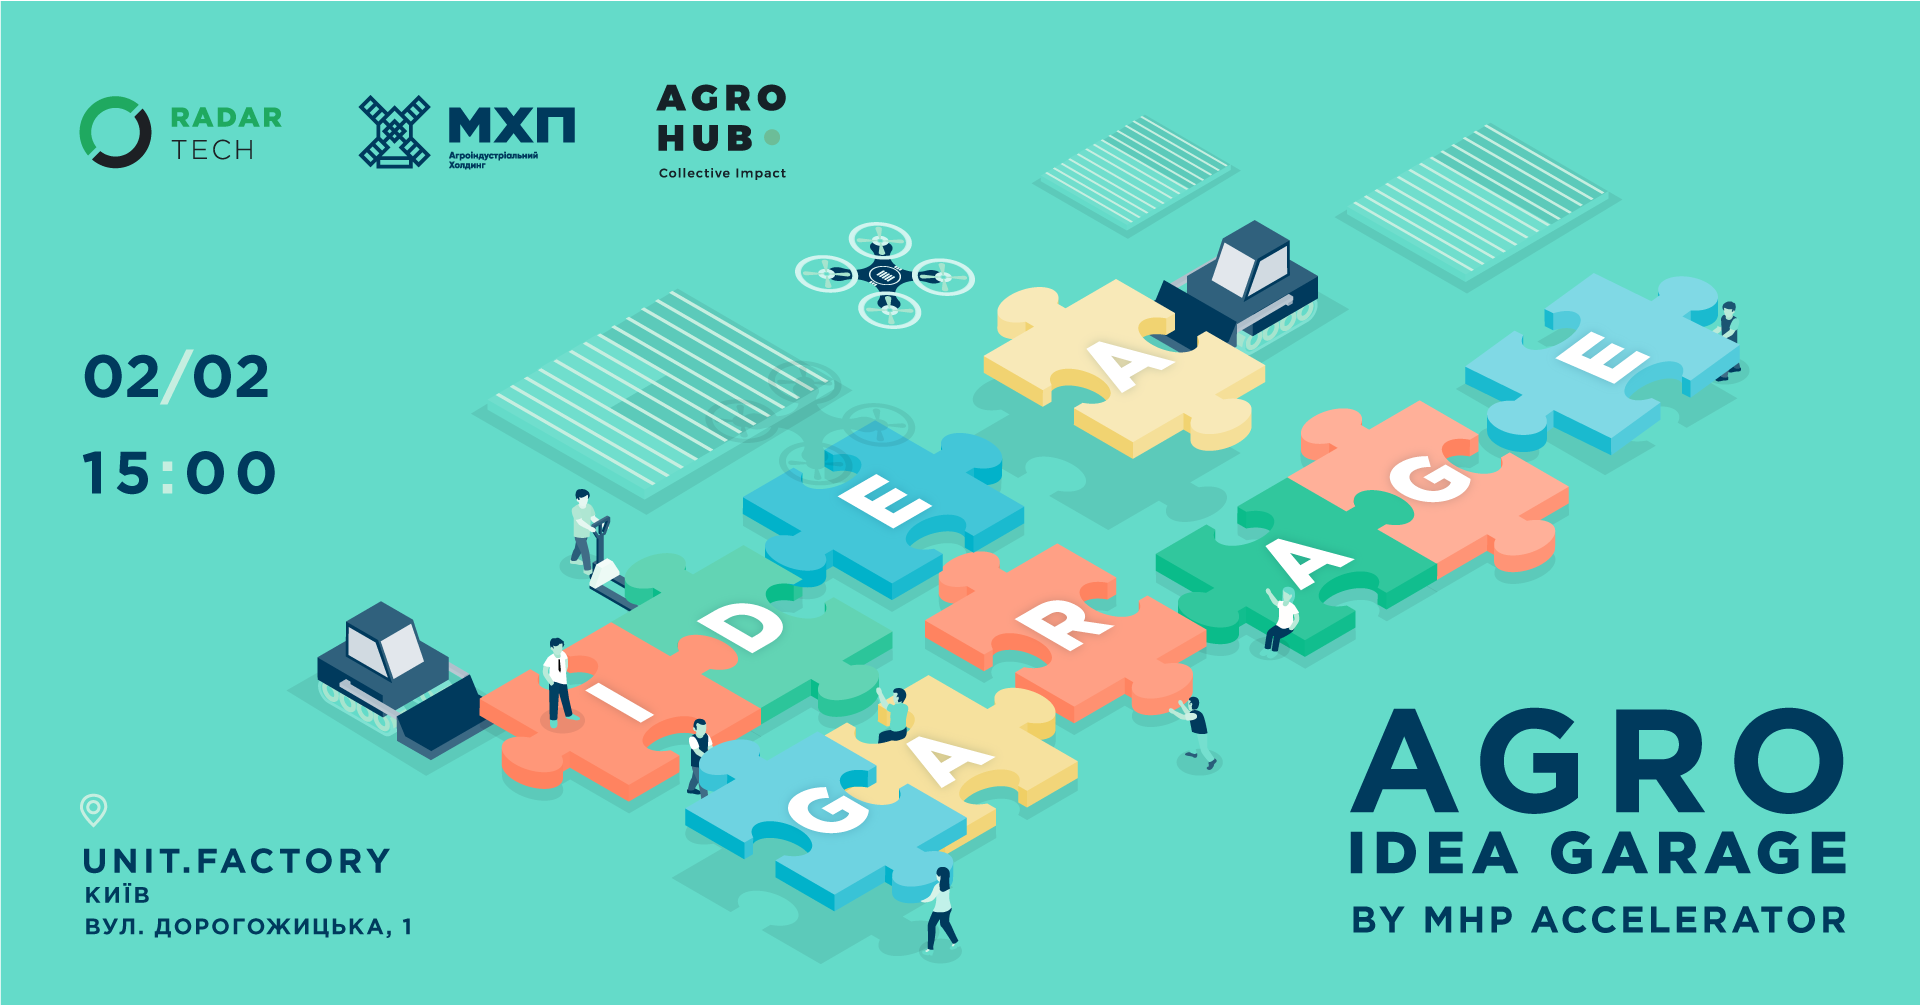 Agro Idea Garage by MHP accelerator